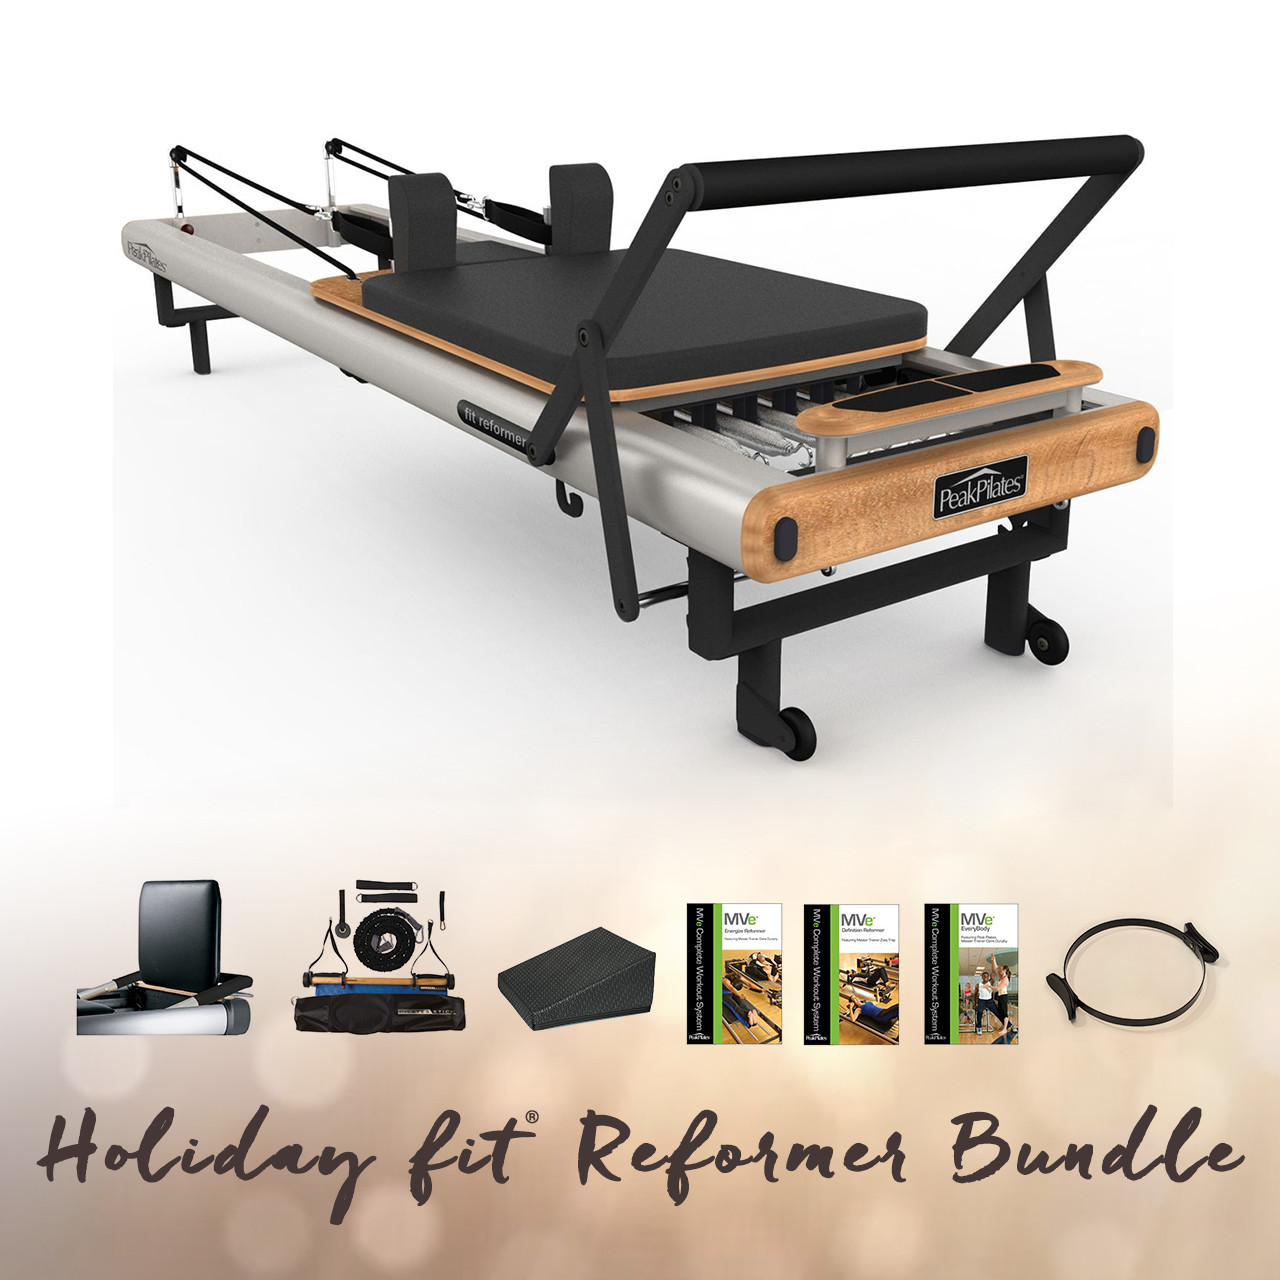 fit™ Reformer Holiday Bundle